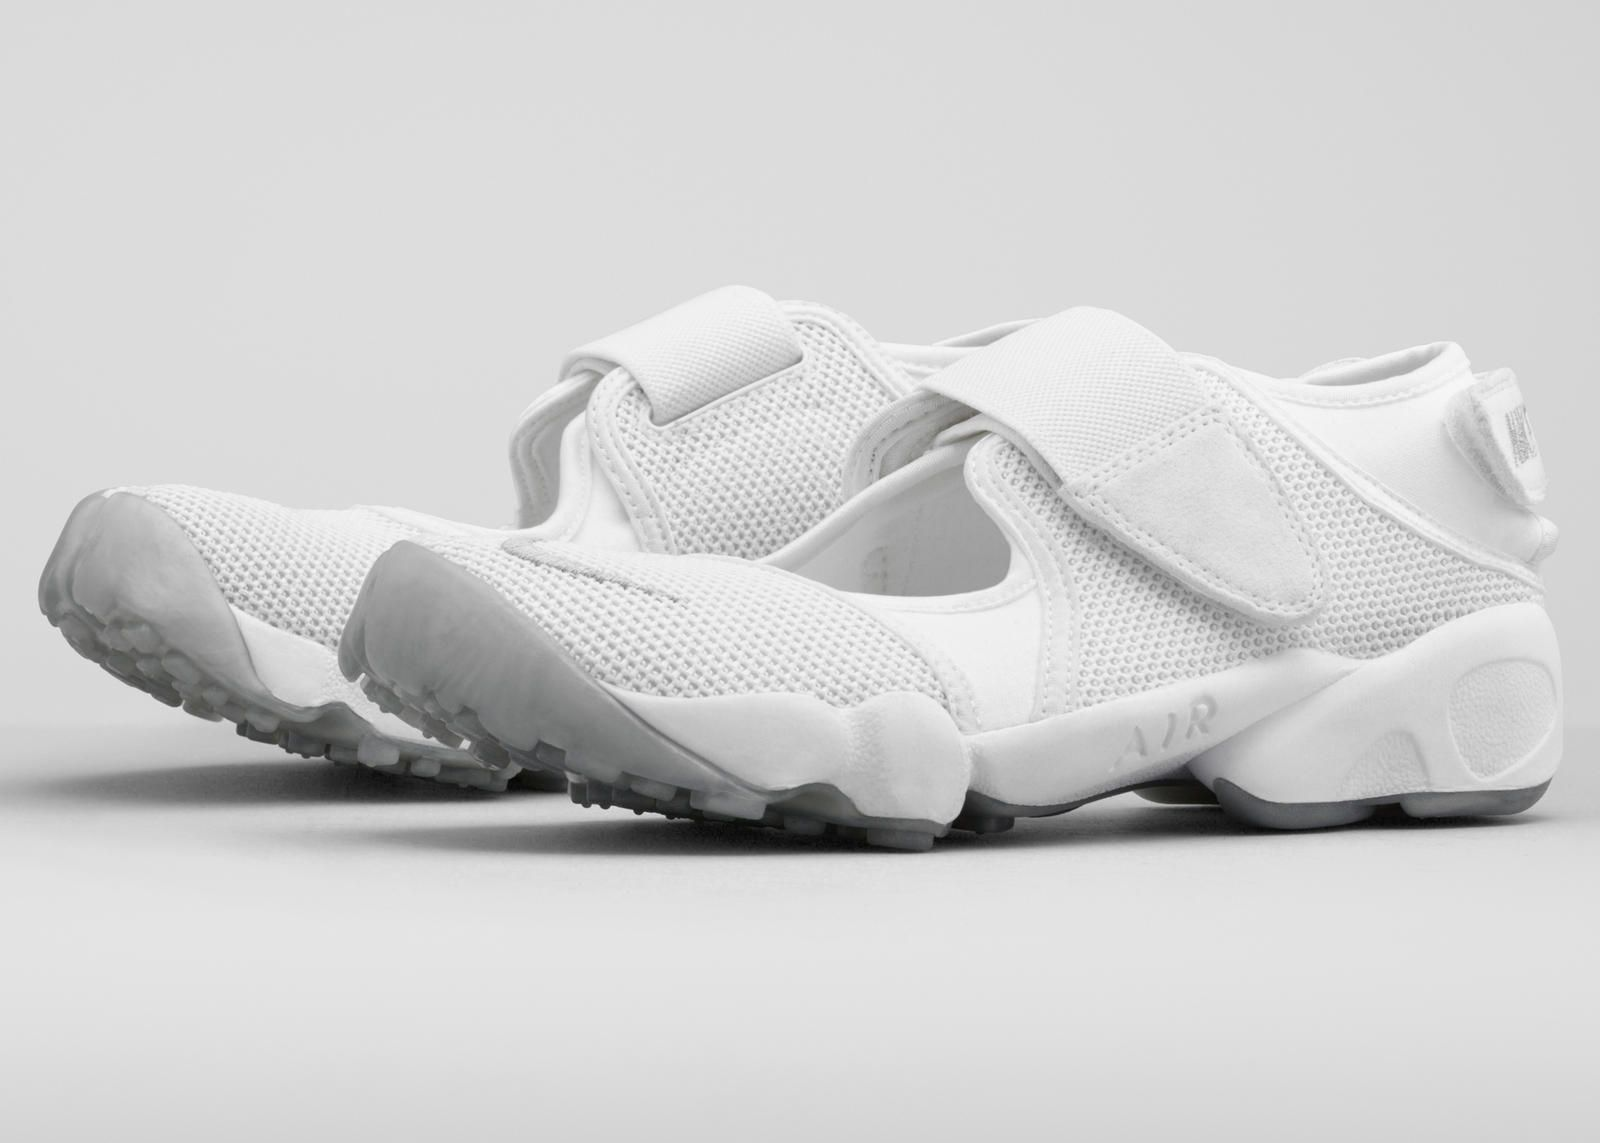 Nike News - Mind the Gap: The Nike Air Rift